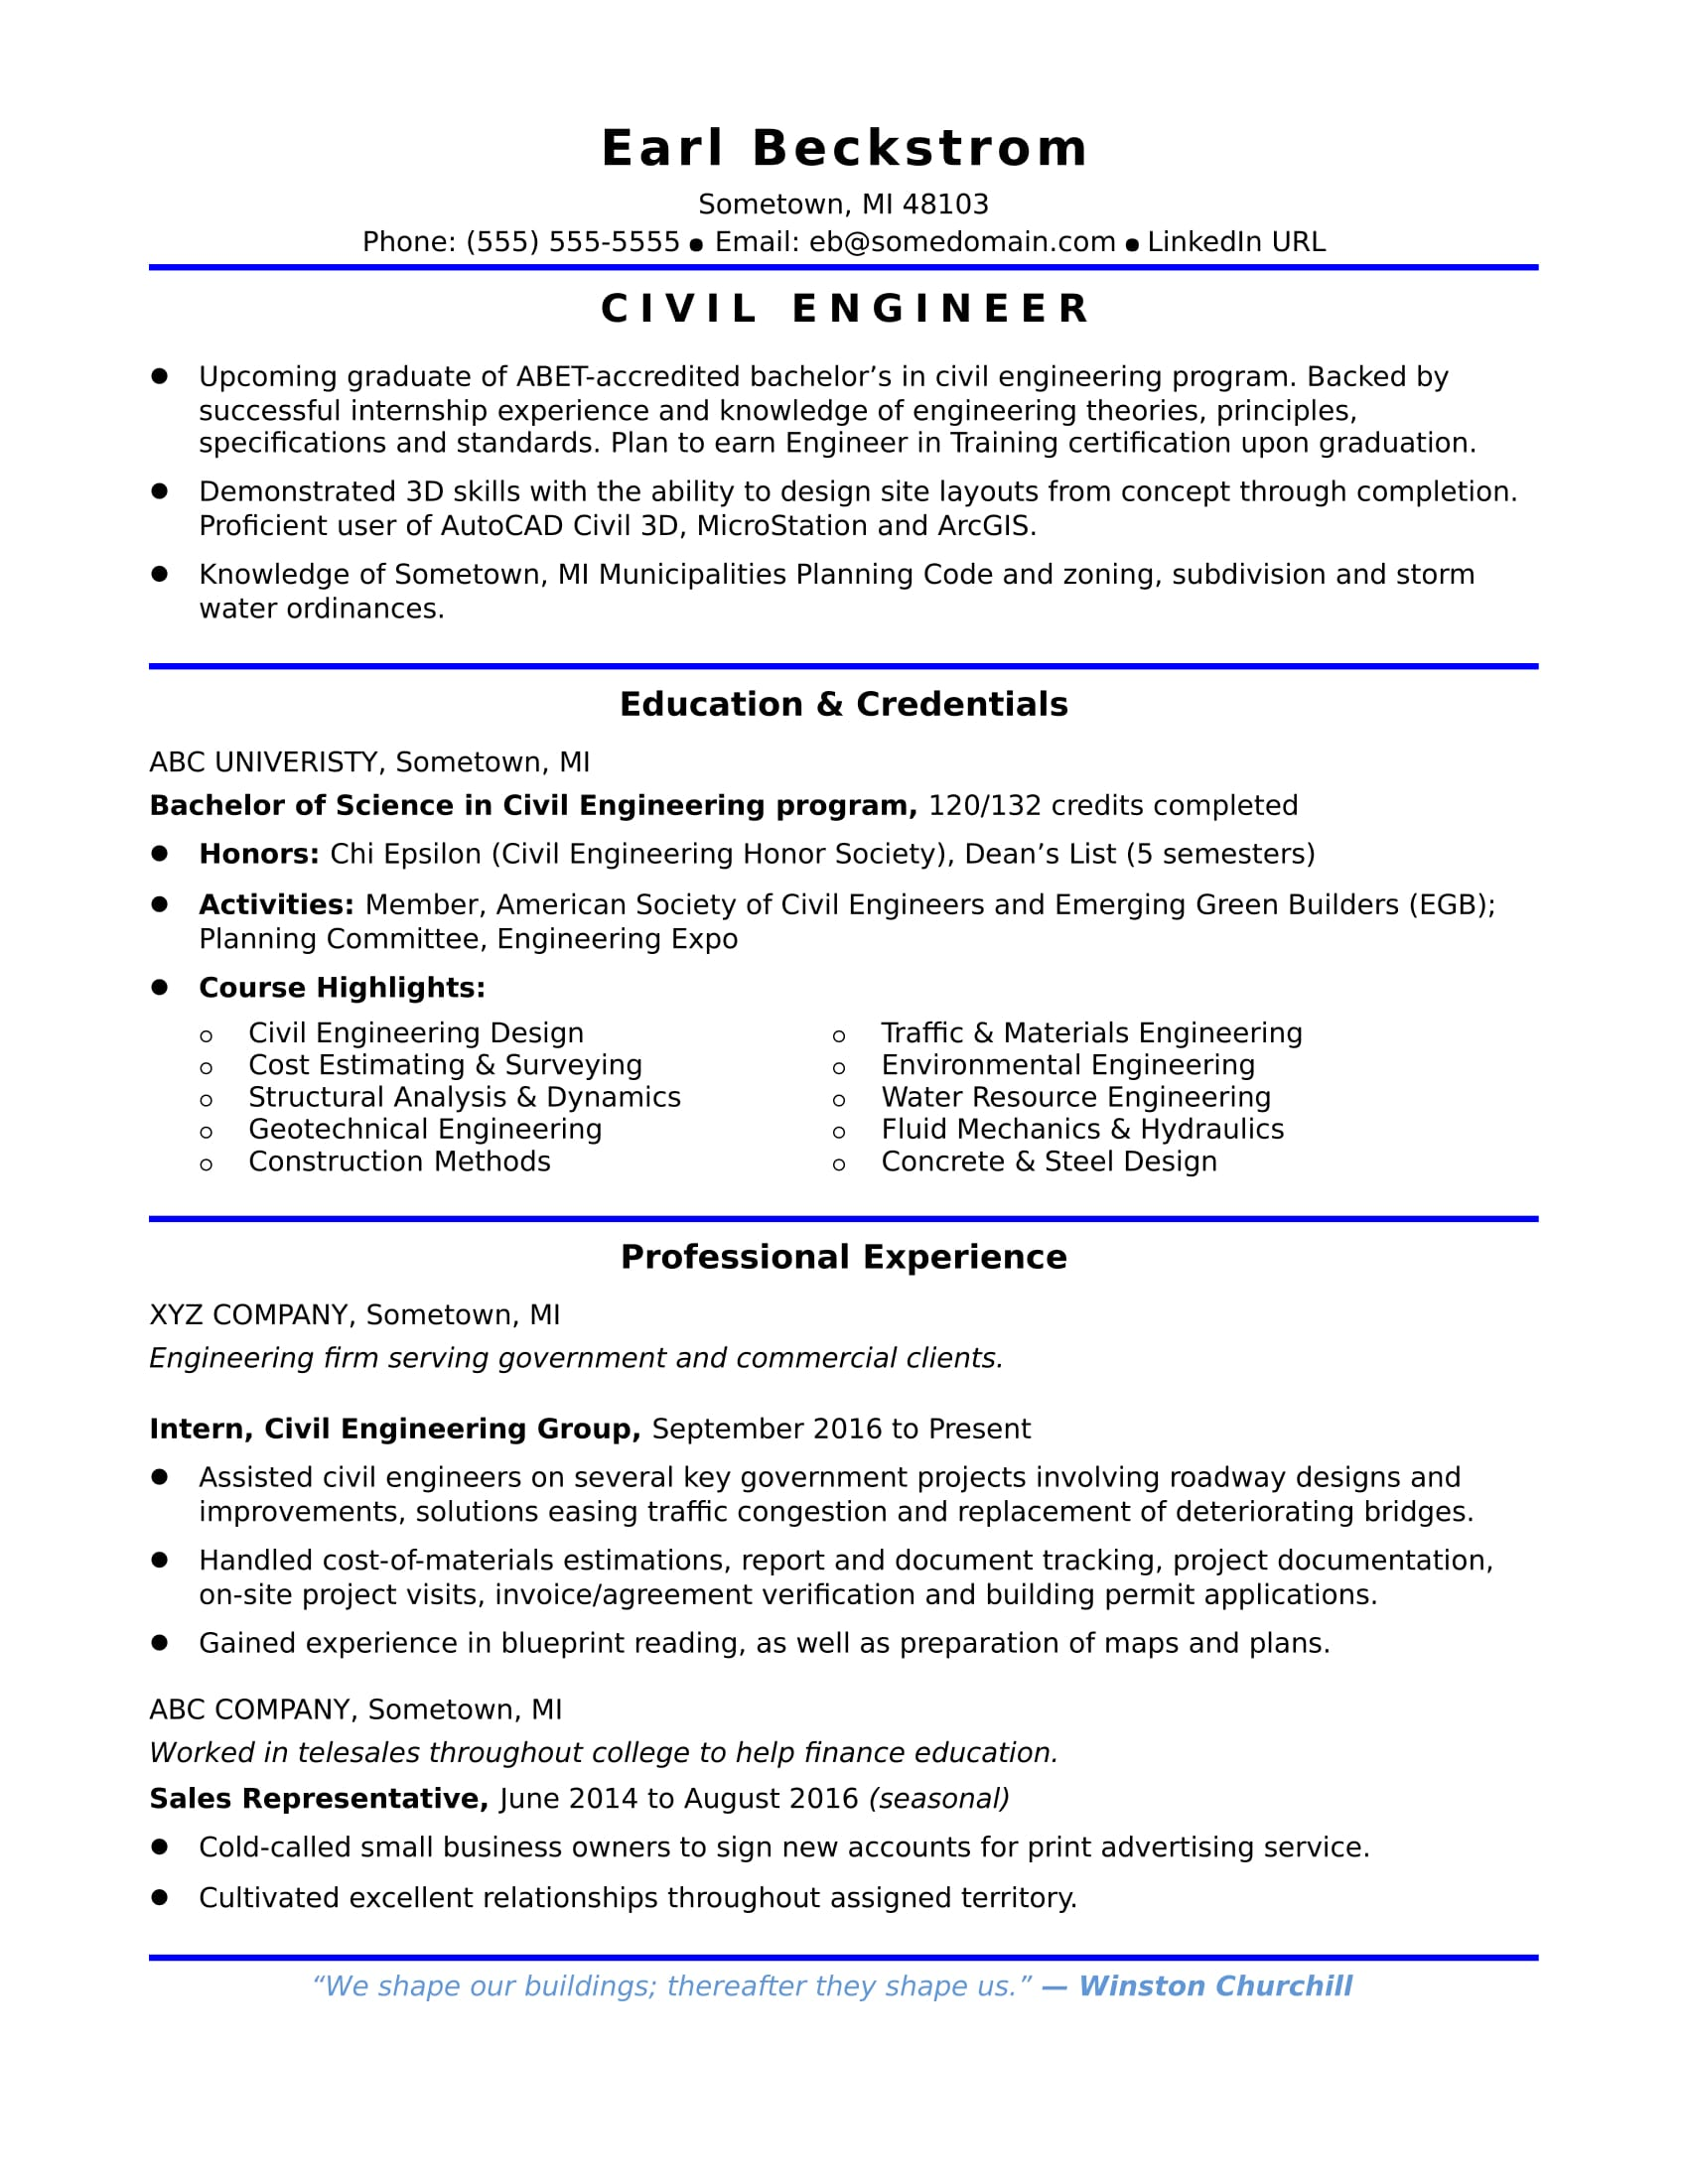 Sample resume for an entry level civil engineer monster sample resume for an entry level civil engineer yelopaper Images